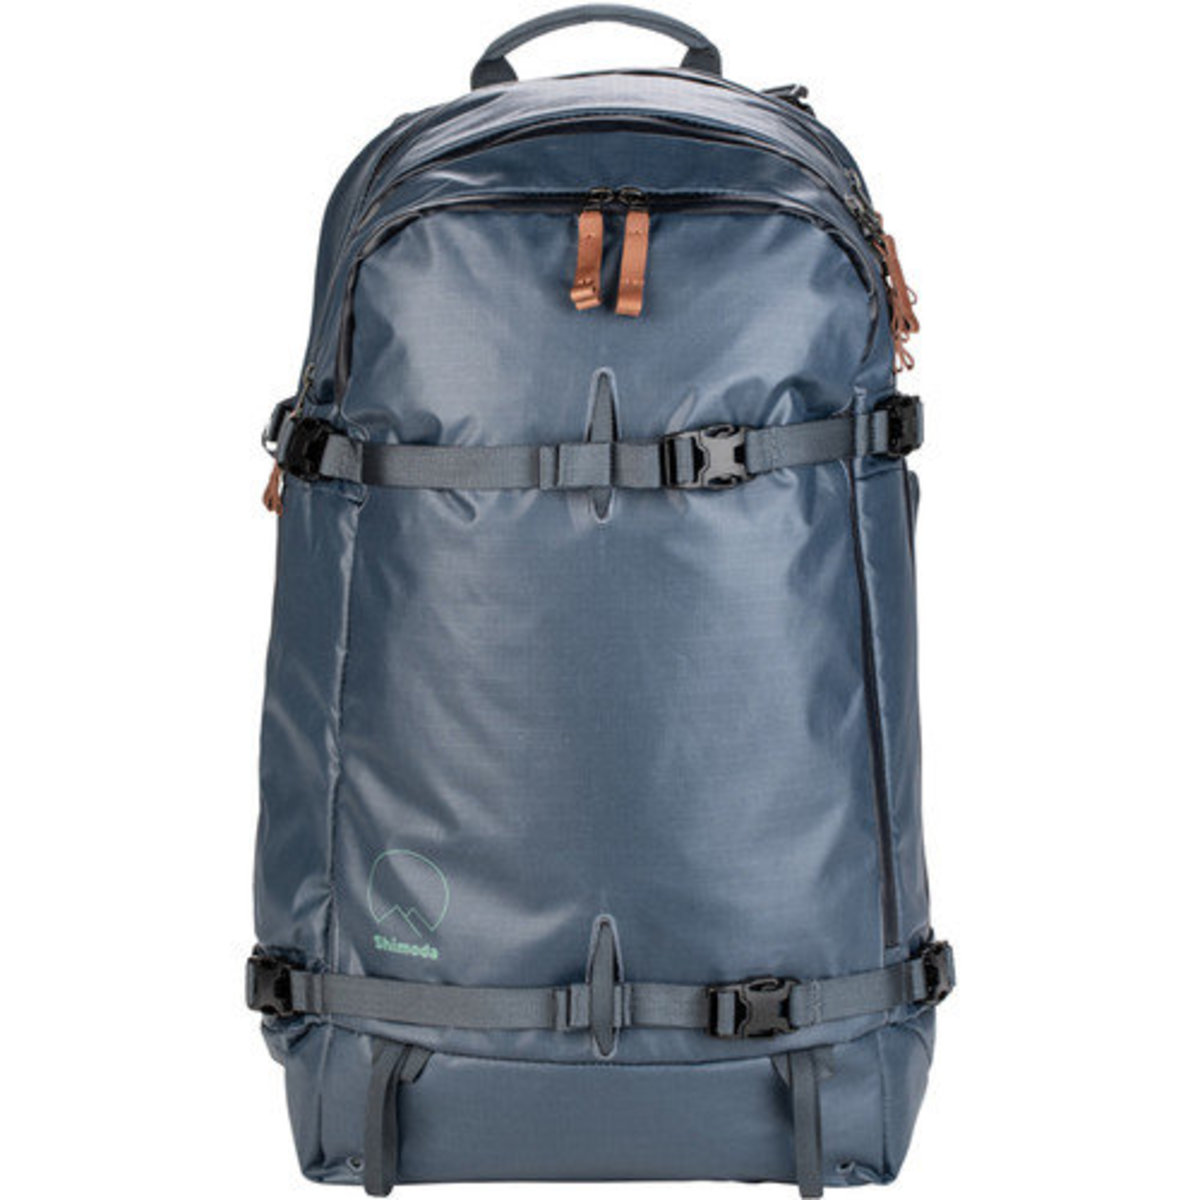 Explore 30 Backpack - Blue Nights